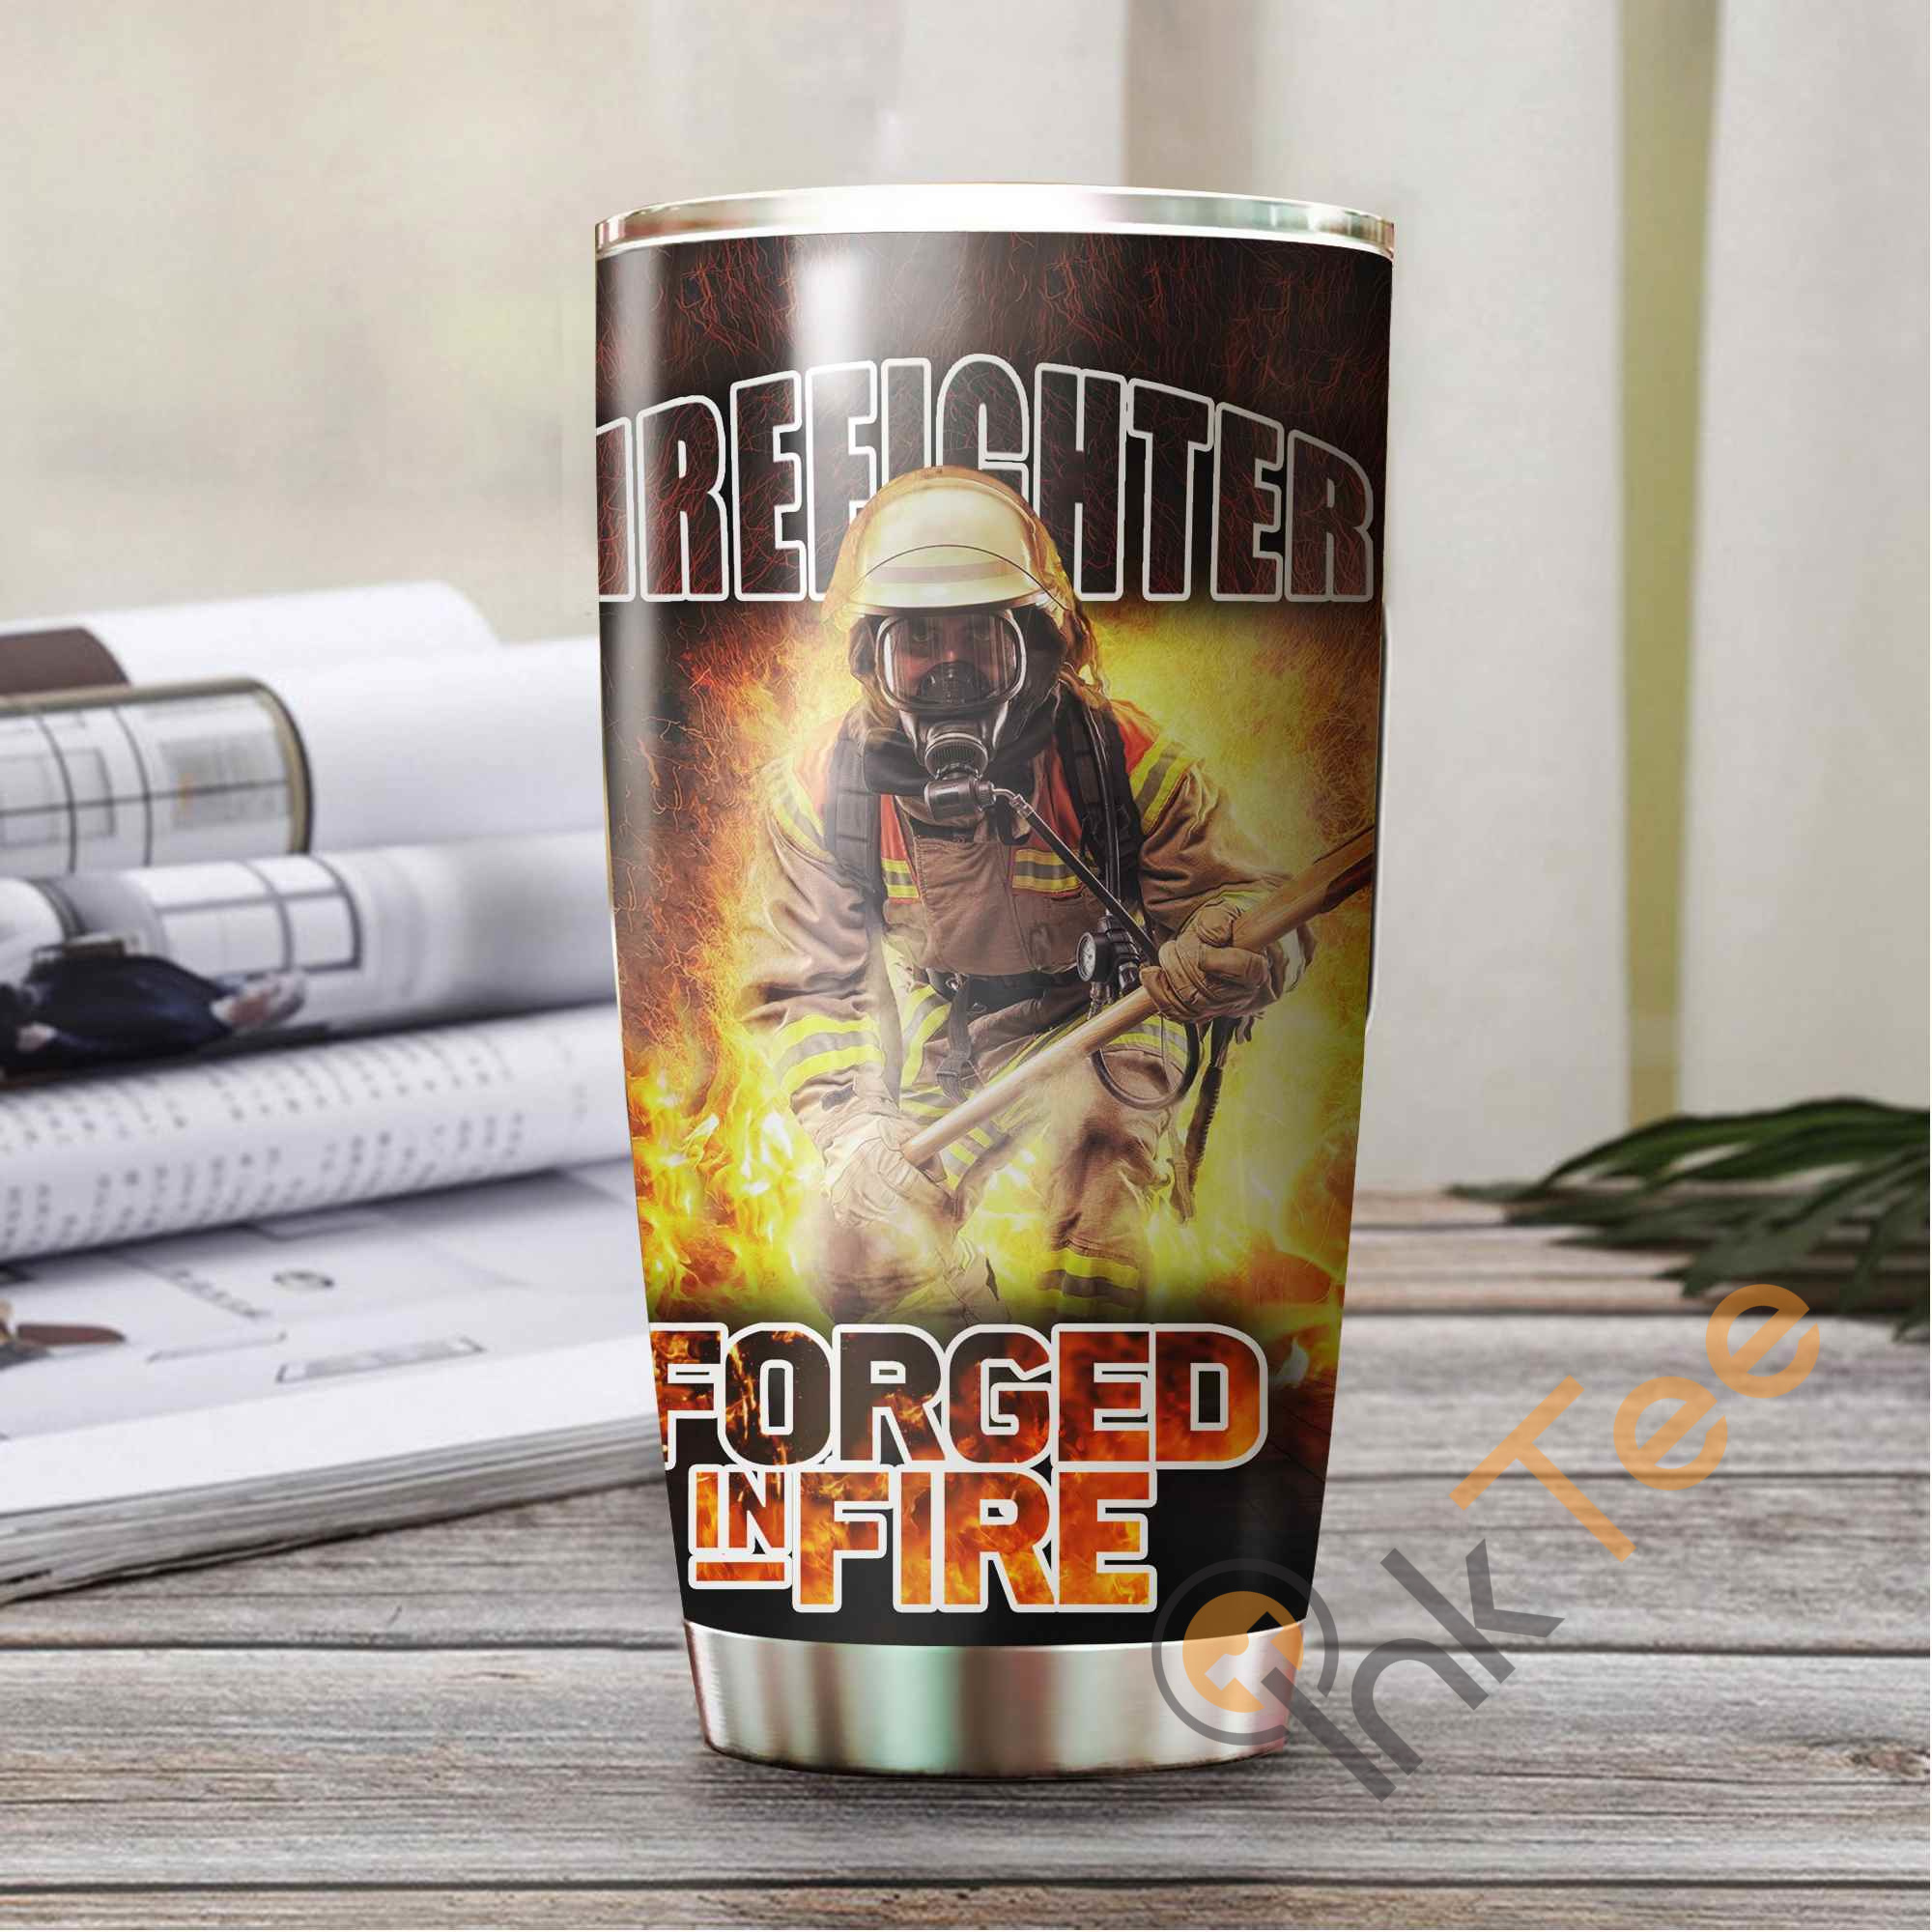 Firefighter Forged In Fire Amazon Best Seller Sku 2898 Stainless Steel Tumbler